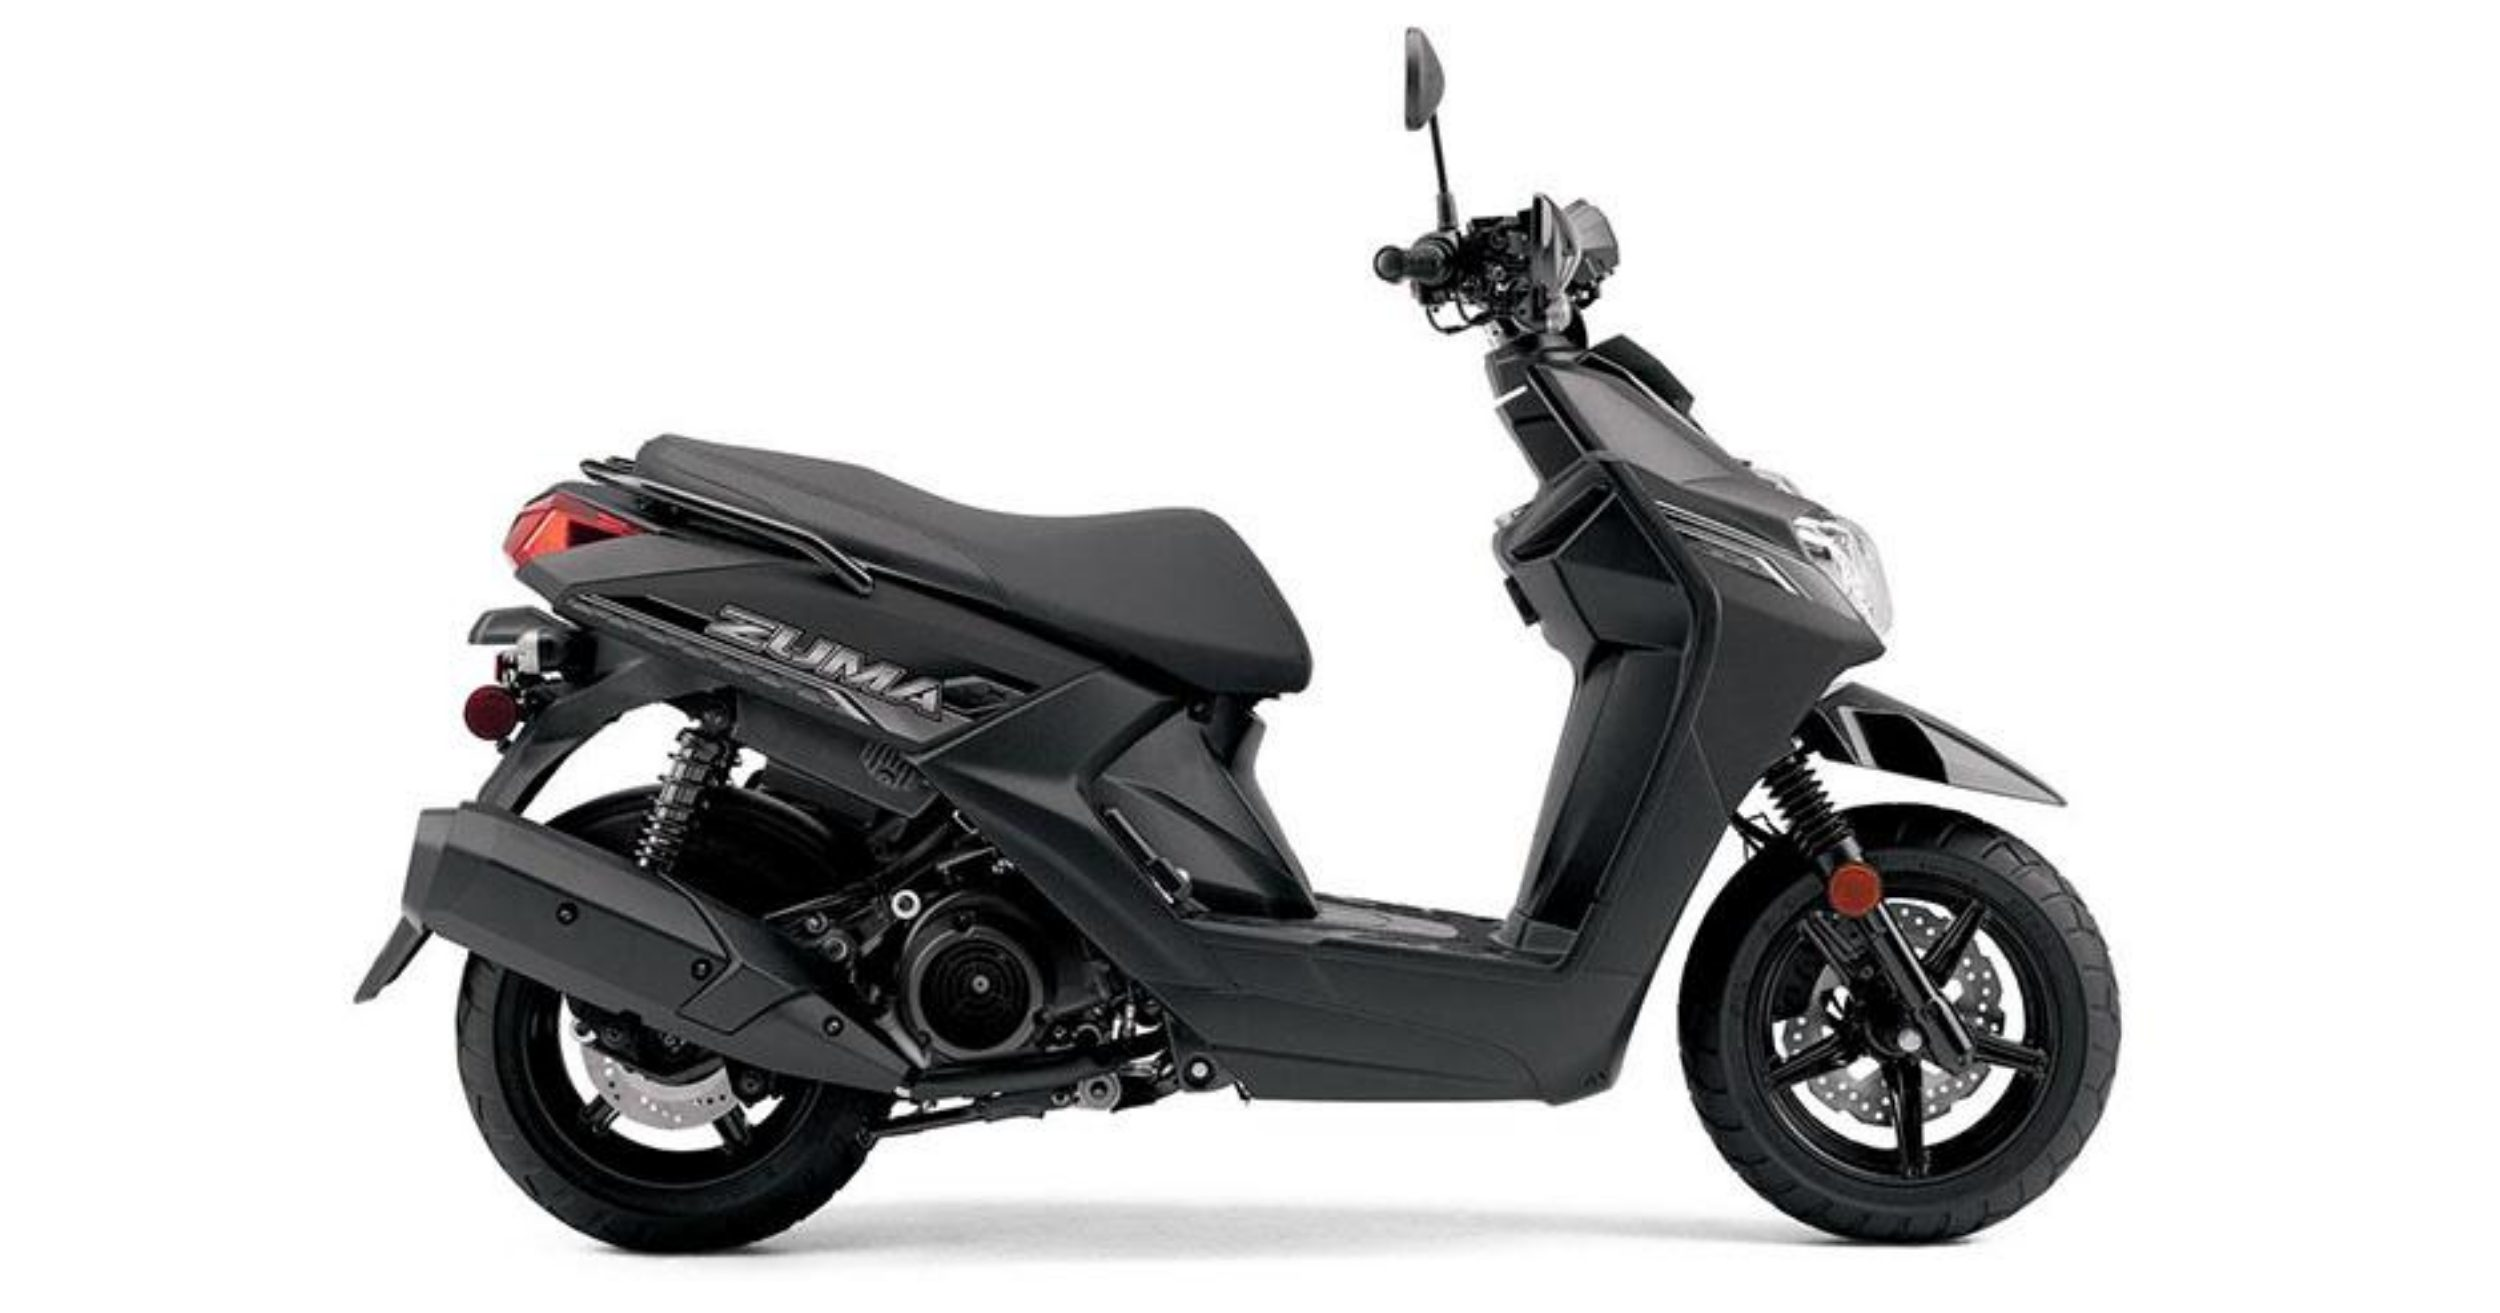 2020-yamaha-bws-125-official-price-specs-release-date-availability-philippines